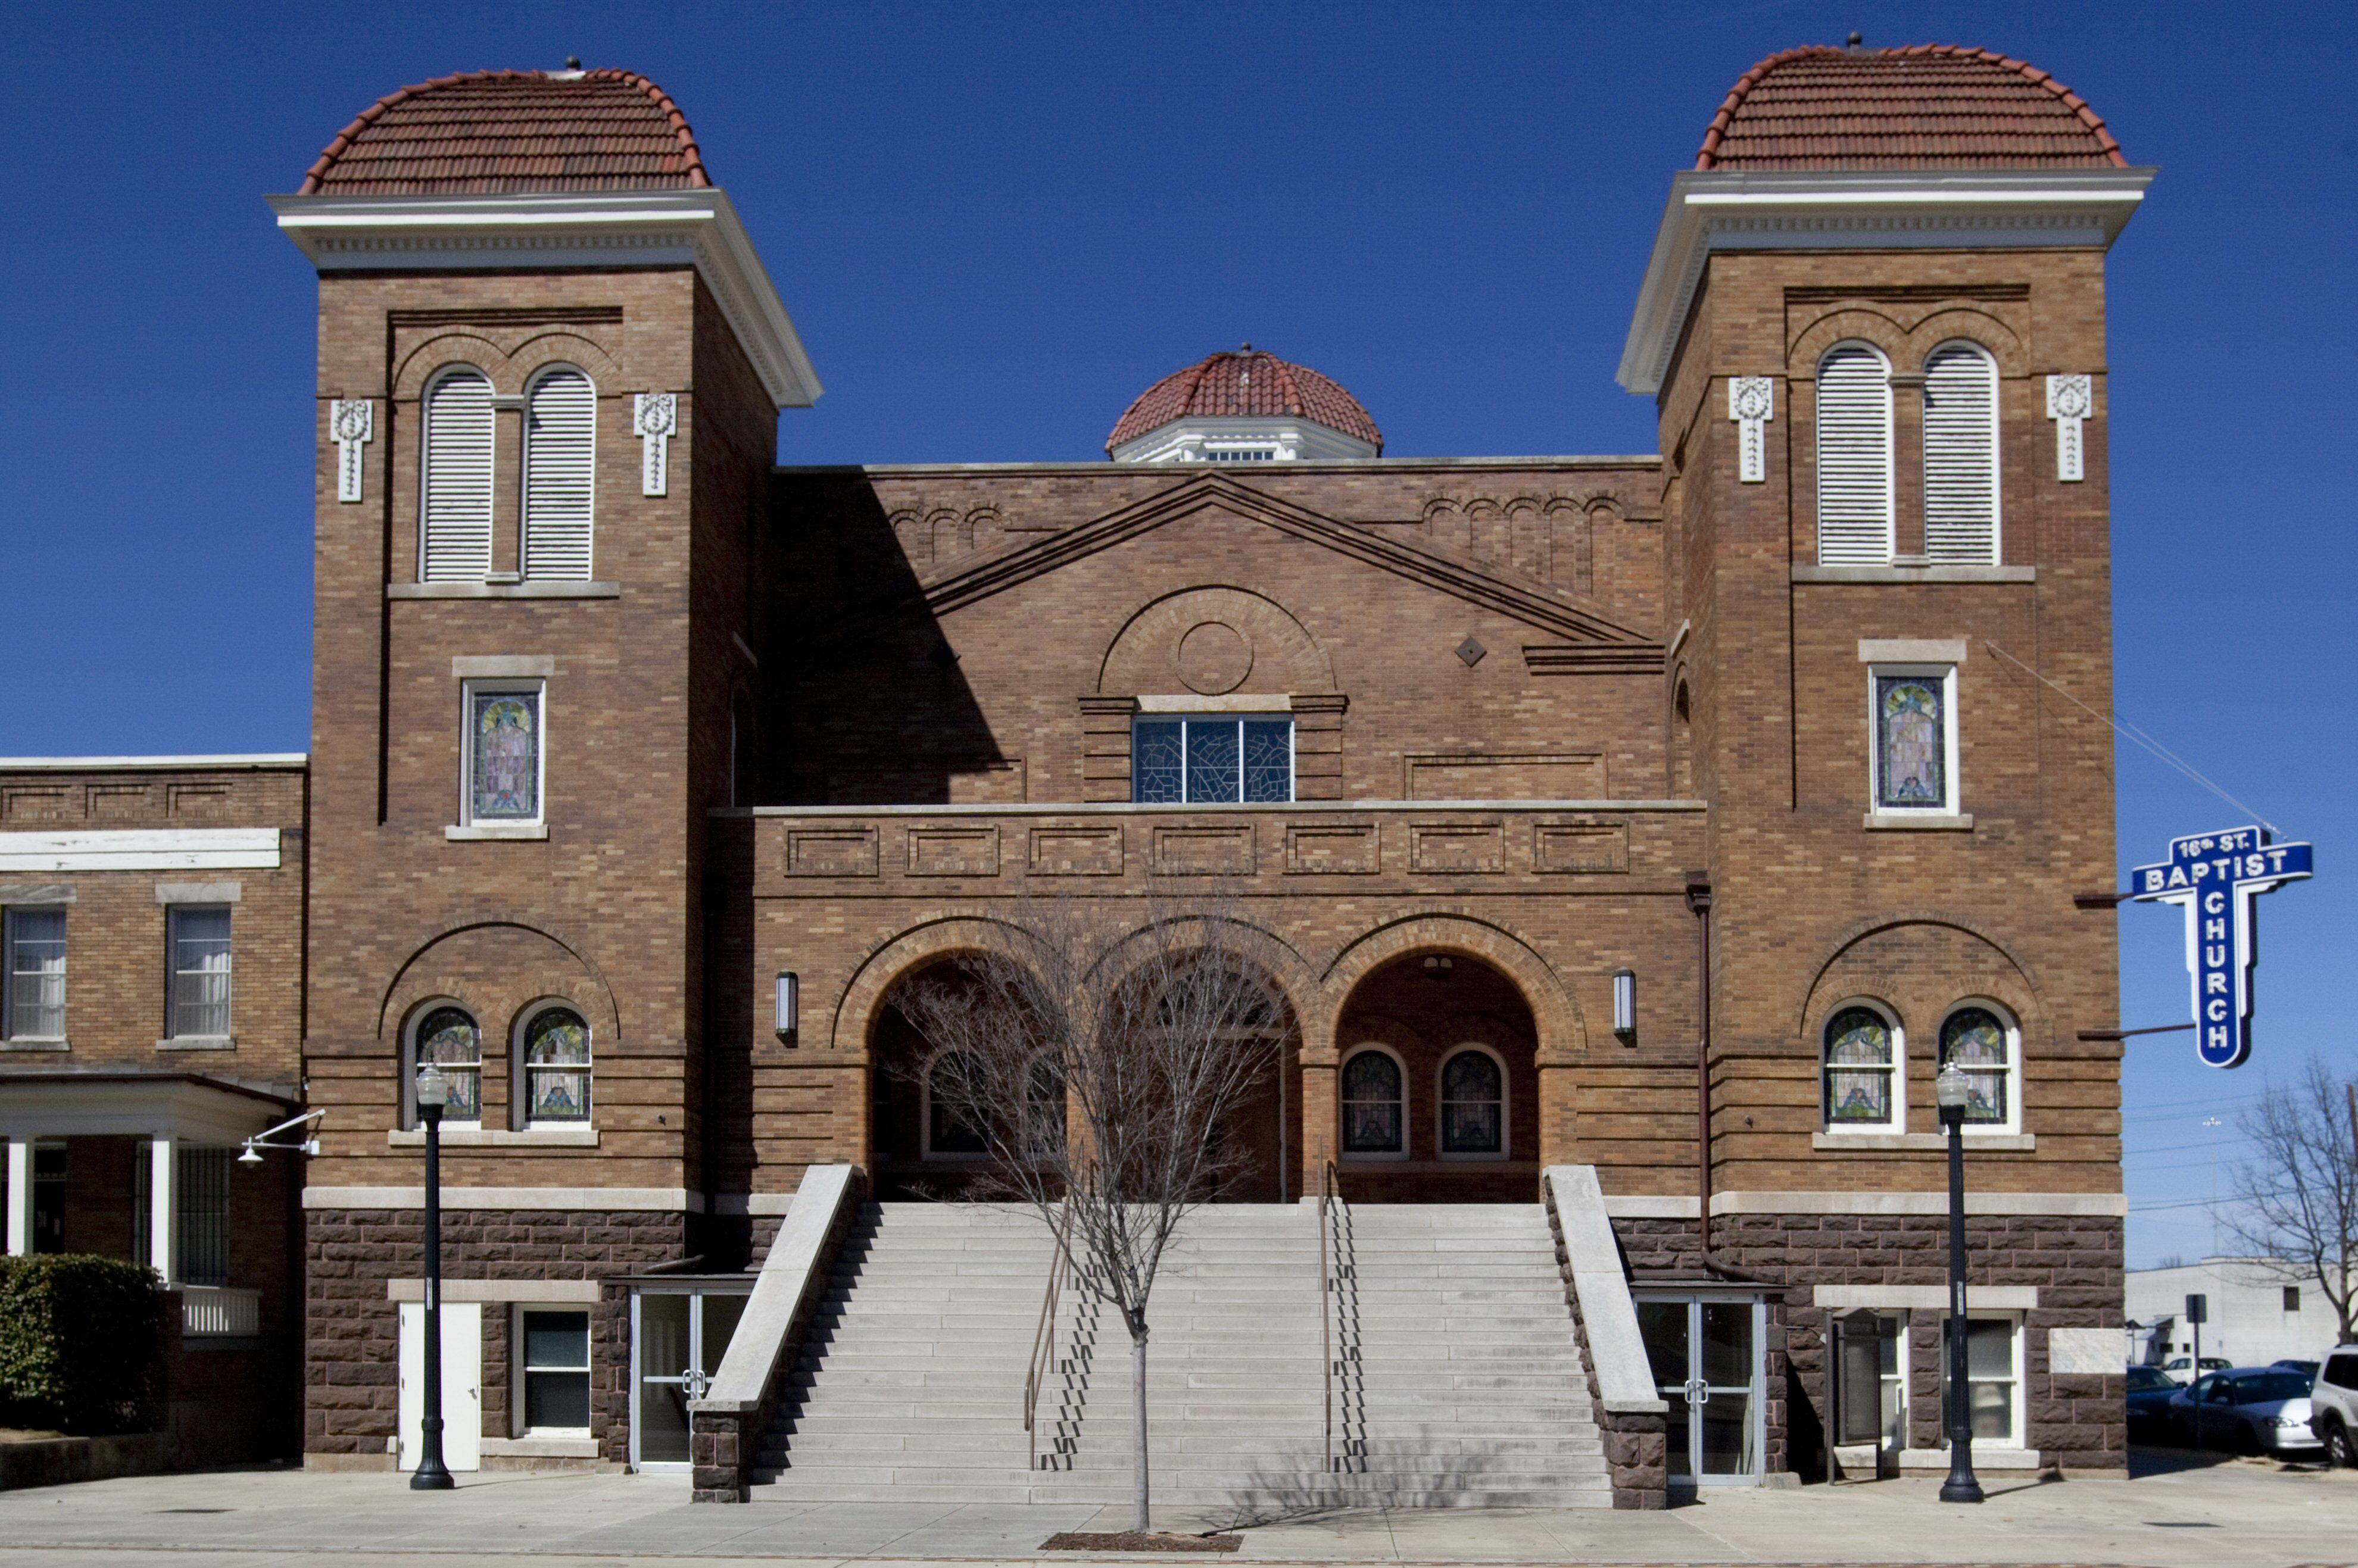 large brick building, symmetrical, two towers on either side of front gable with three arched entrances -- many stairs going up to the arches